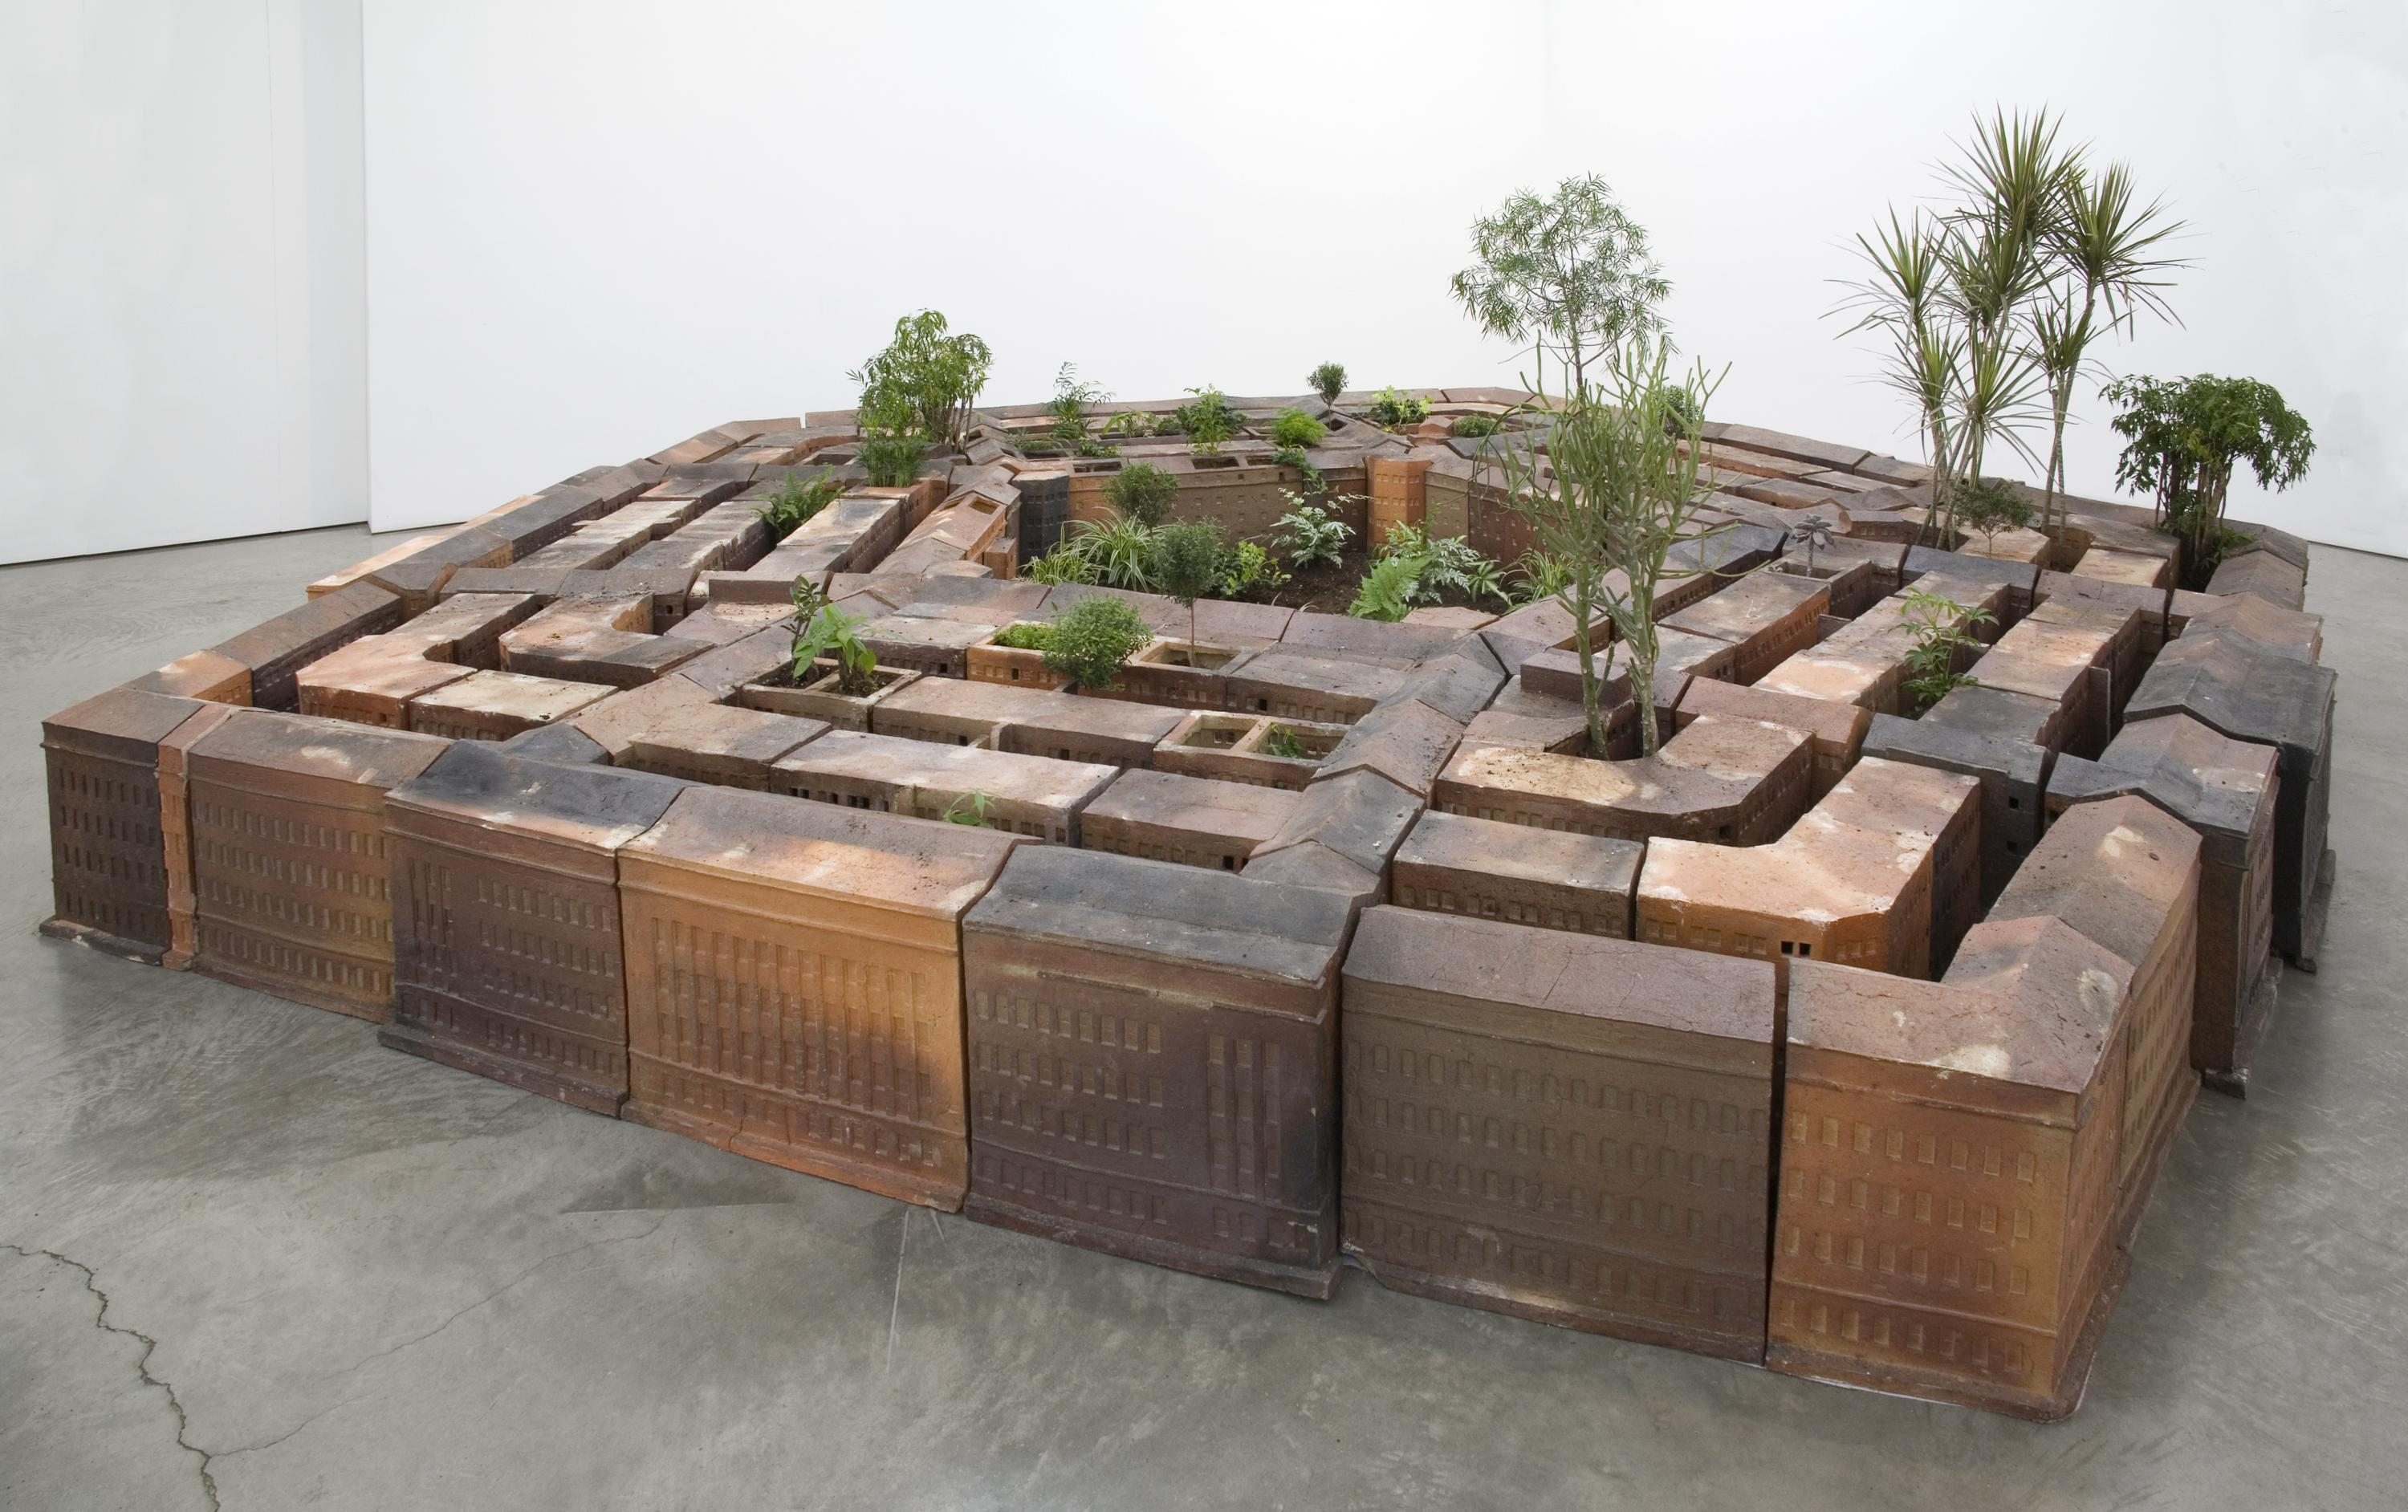 A ceramic model resembles the United States government building the Pentagon, with plants emerging from the alleyways and center open-air space.